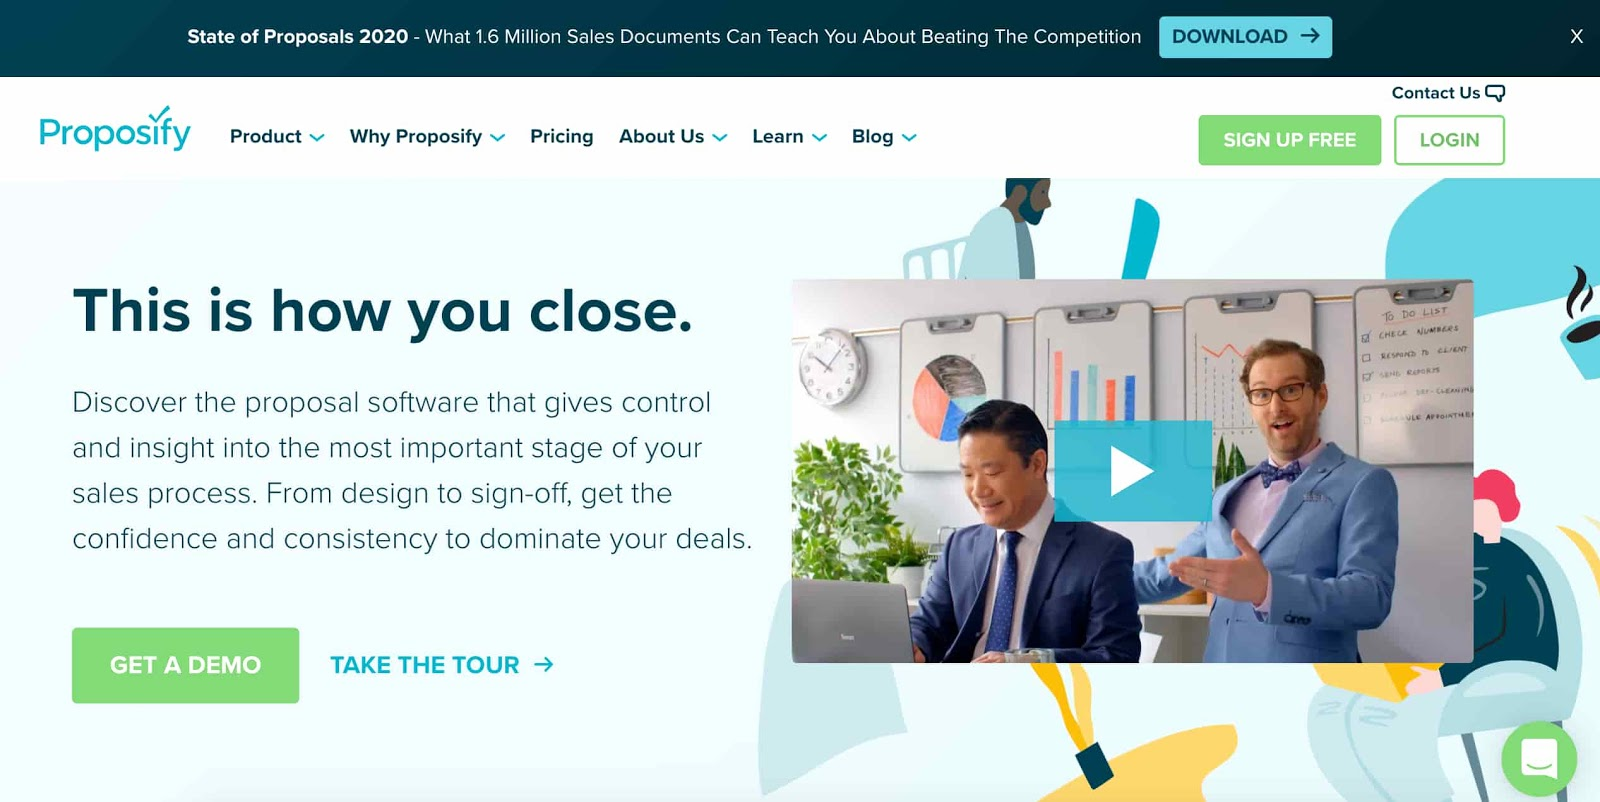 proposify example of a b2b sales tool